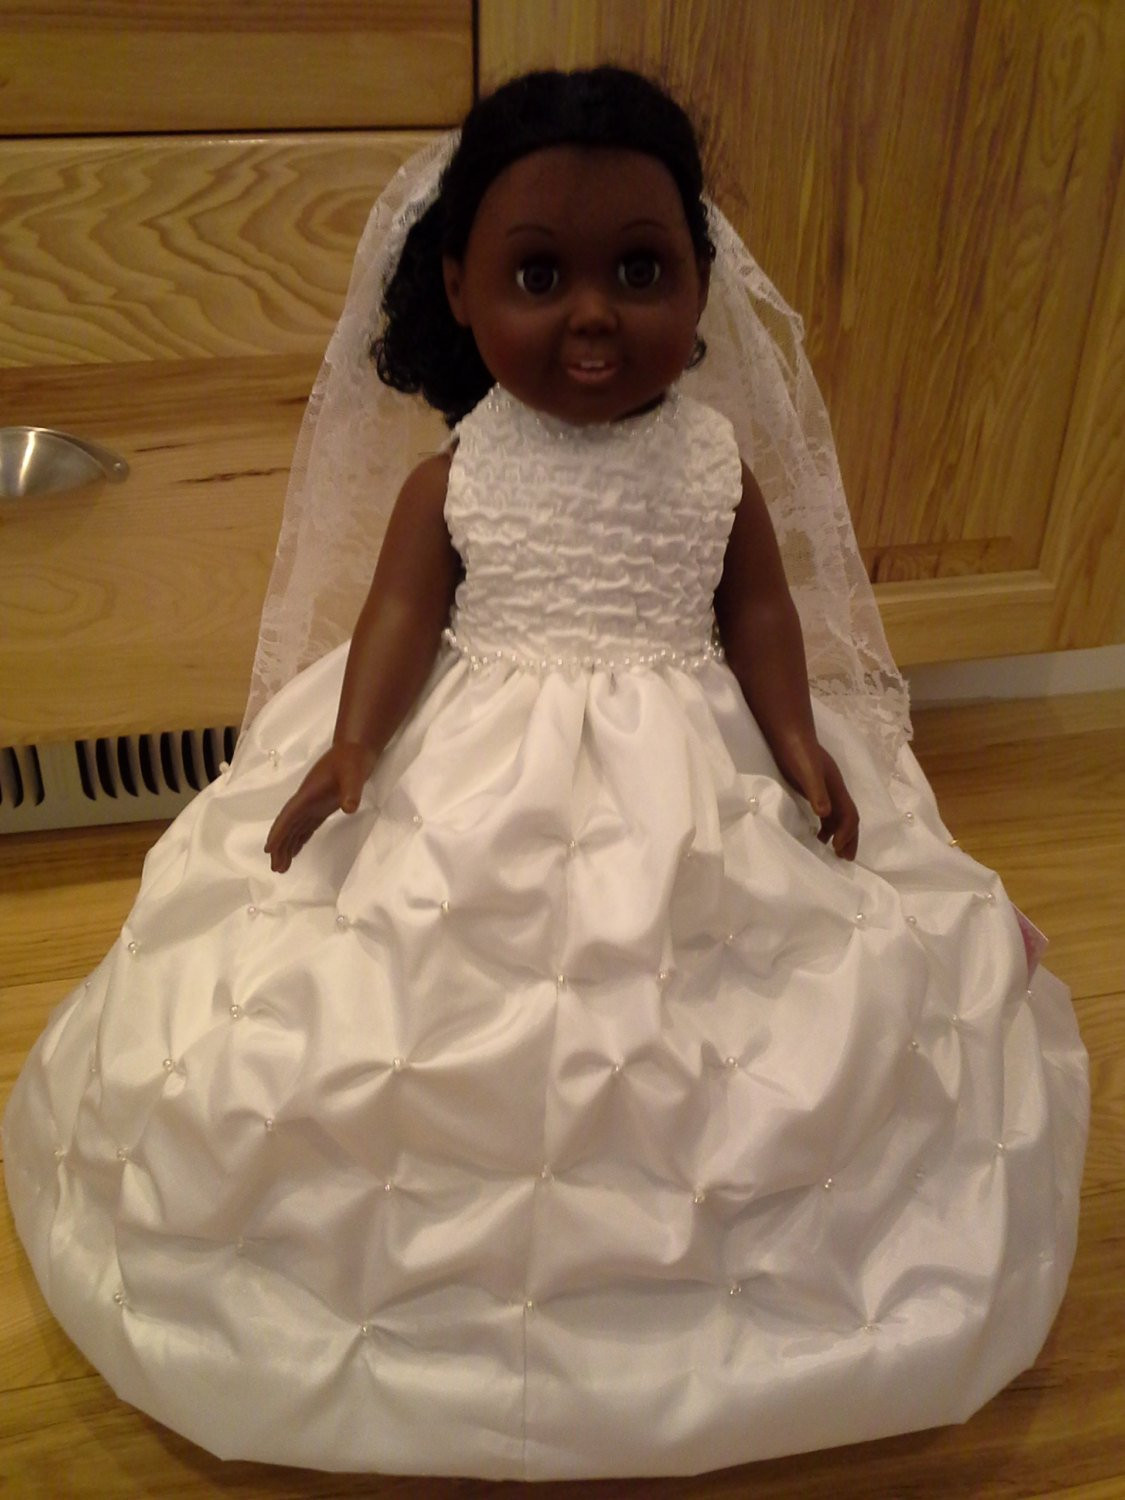 Elegant Doll Wedding Gown and Veil American Girl Doll American Girl Doll Wedding Dress Of Best Of White Munion Wedding Dress formal Spring Church Fits 18 American Girl Doll Wedding Dress